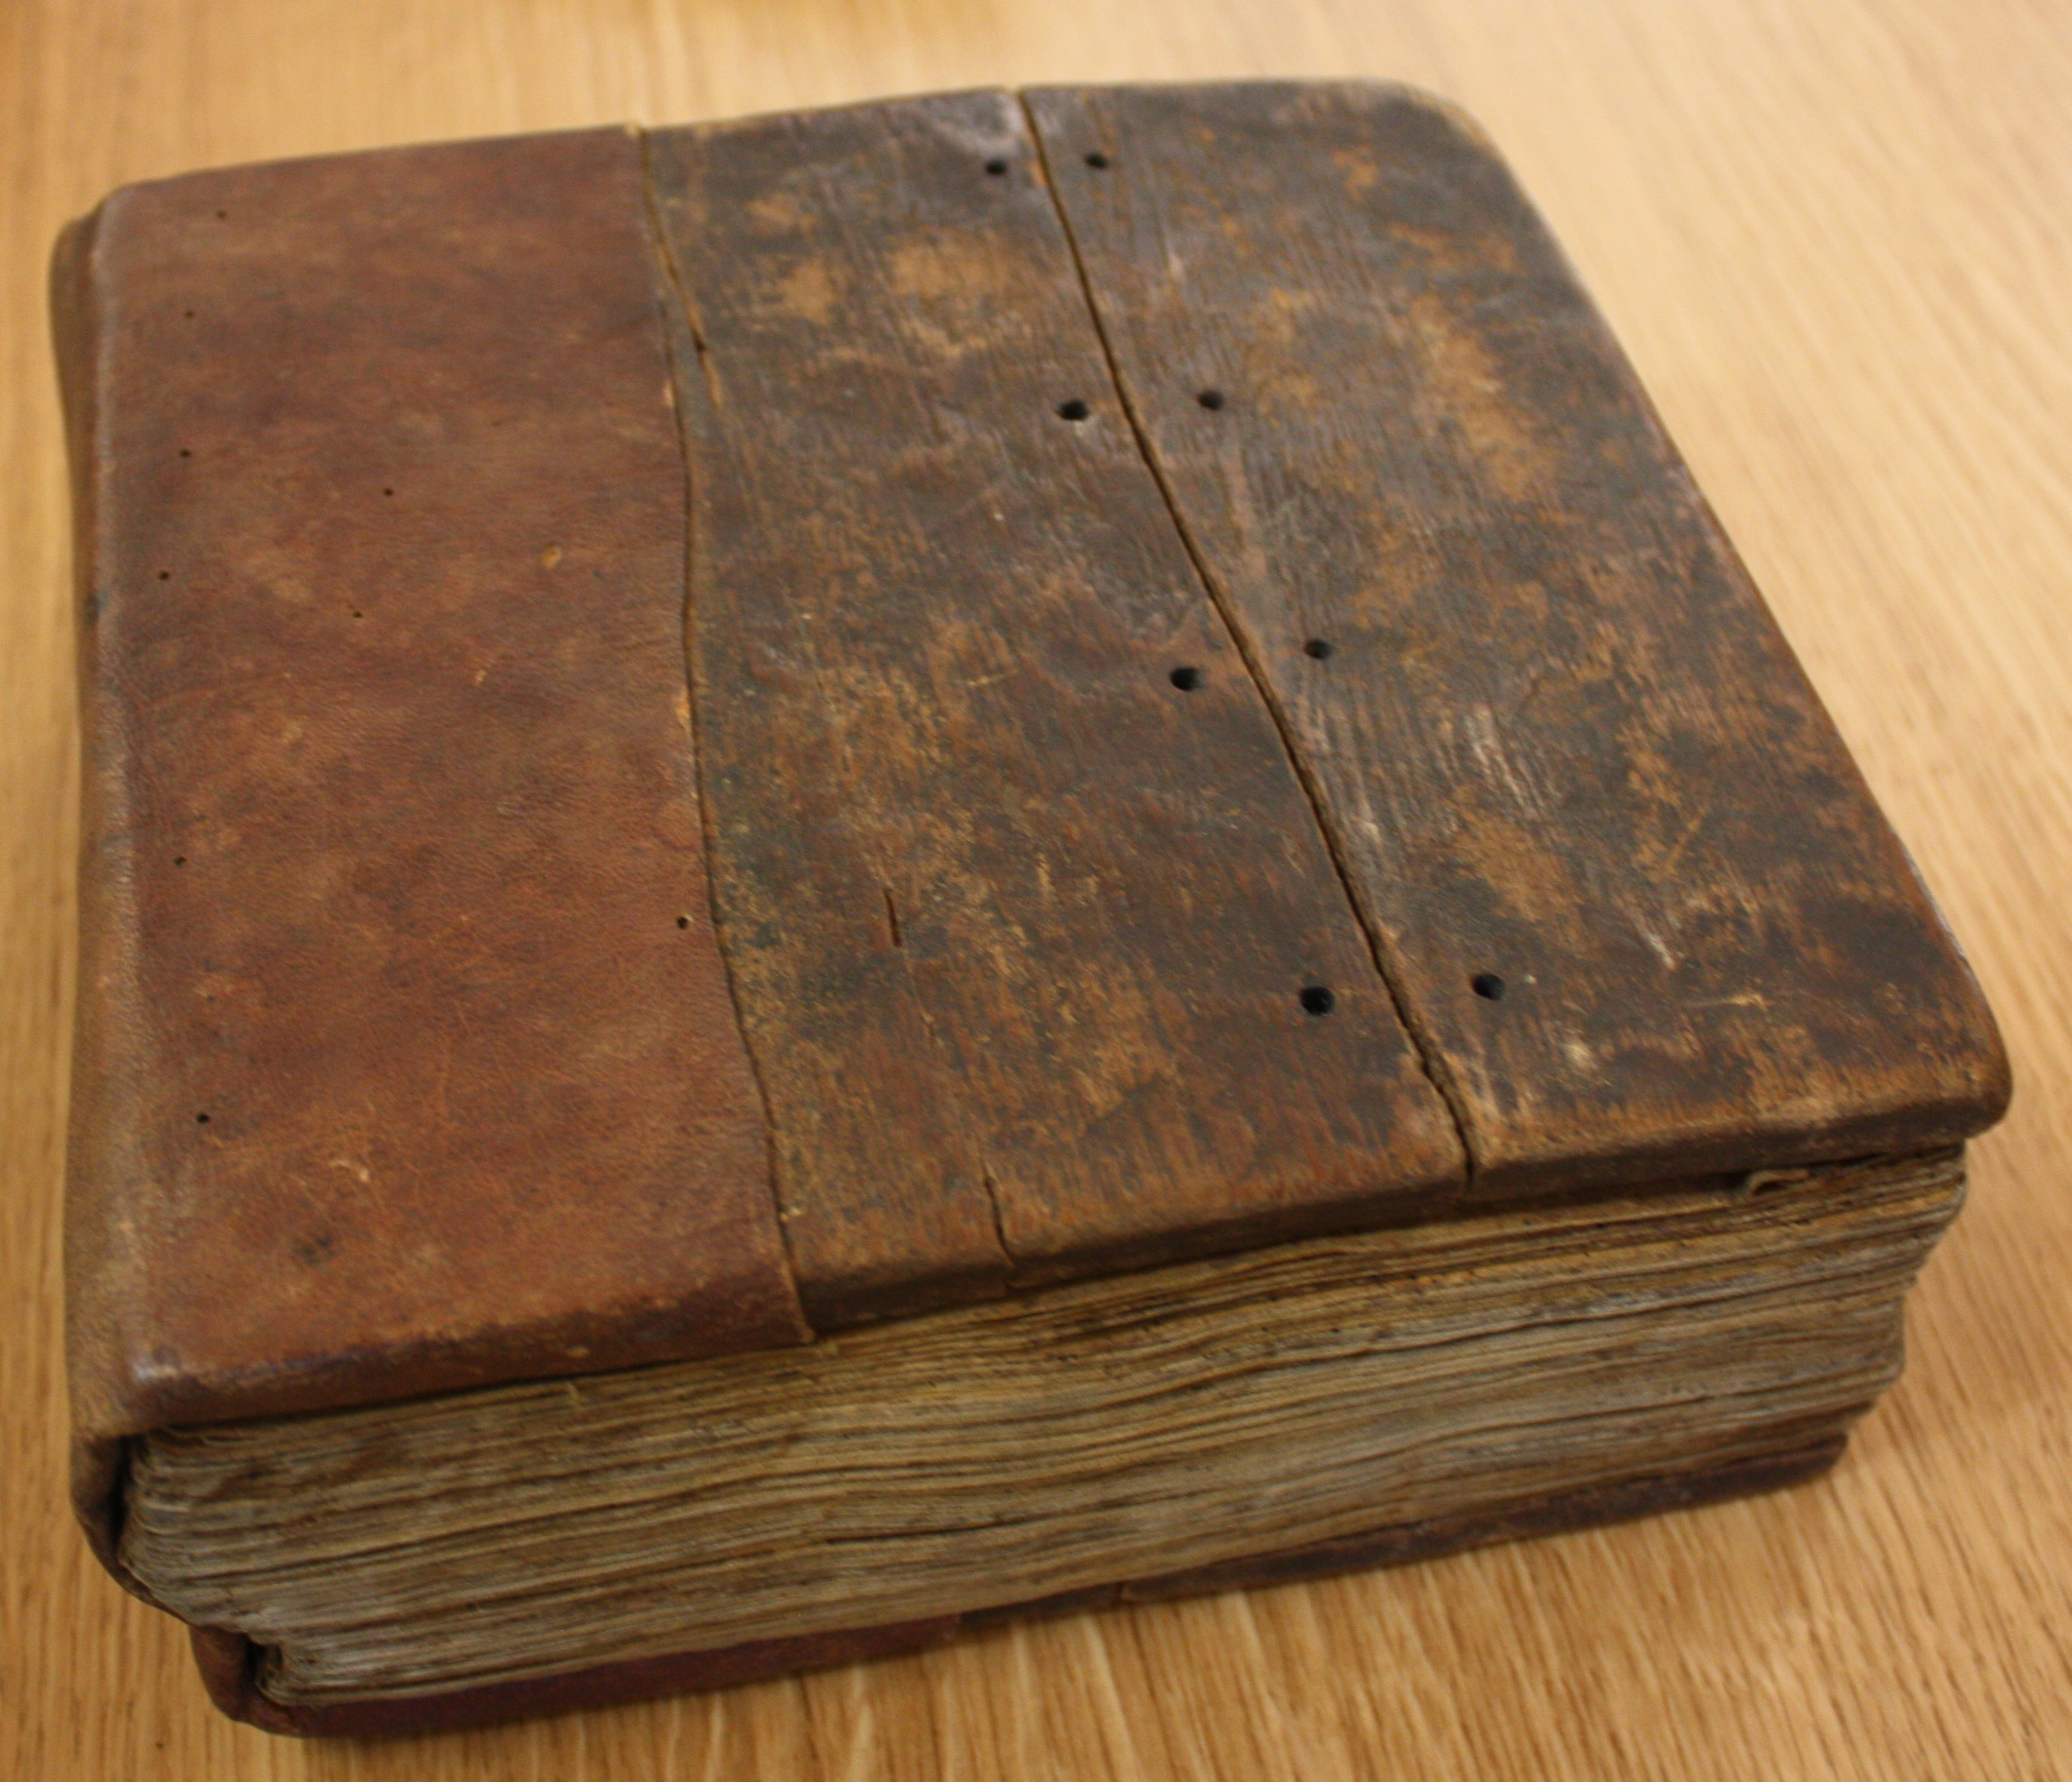 Cover of Ms 366 made from wooden board